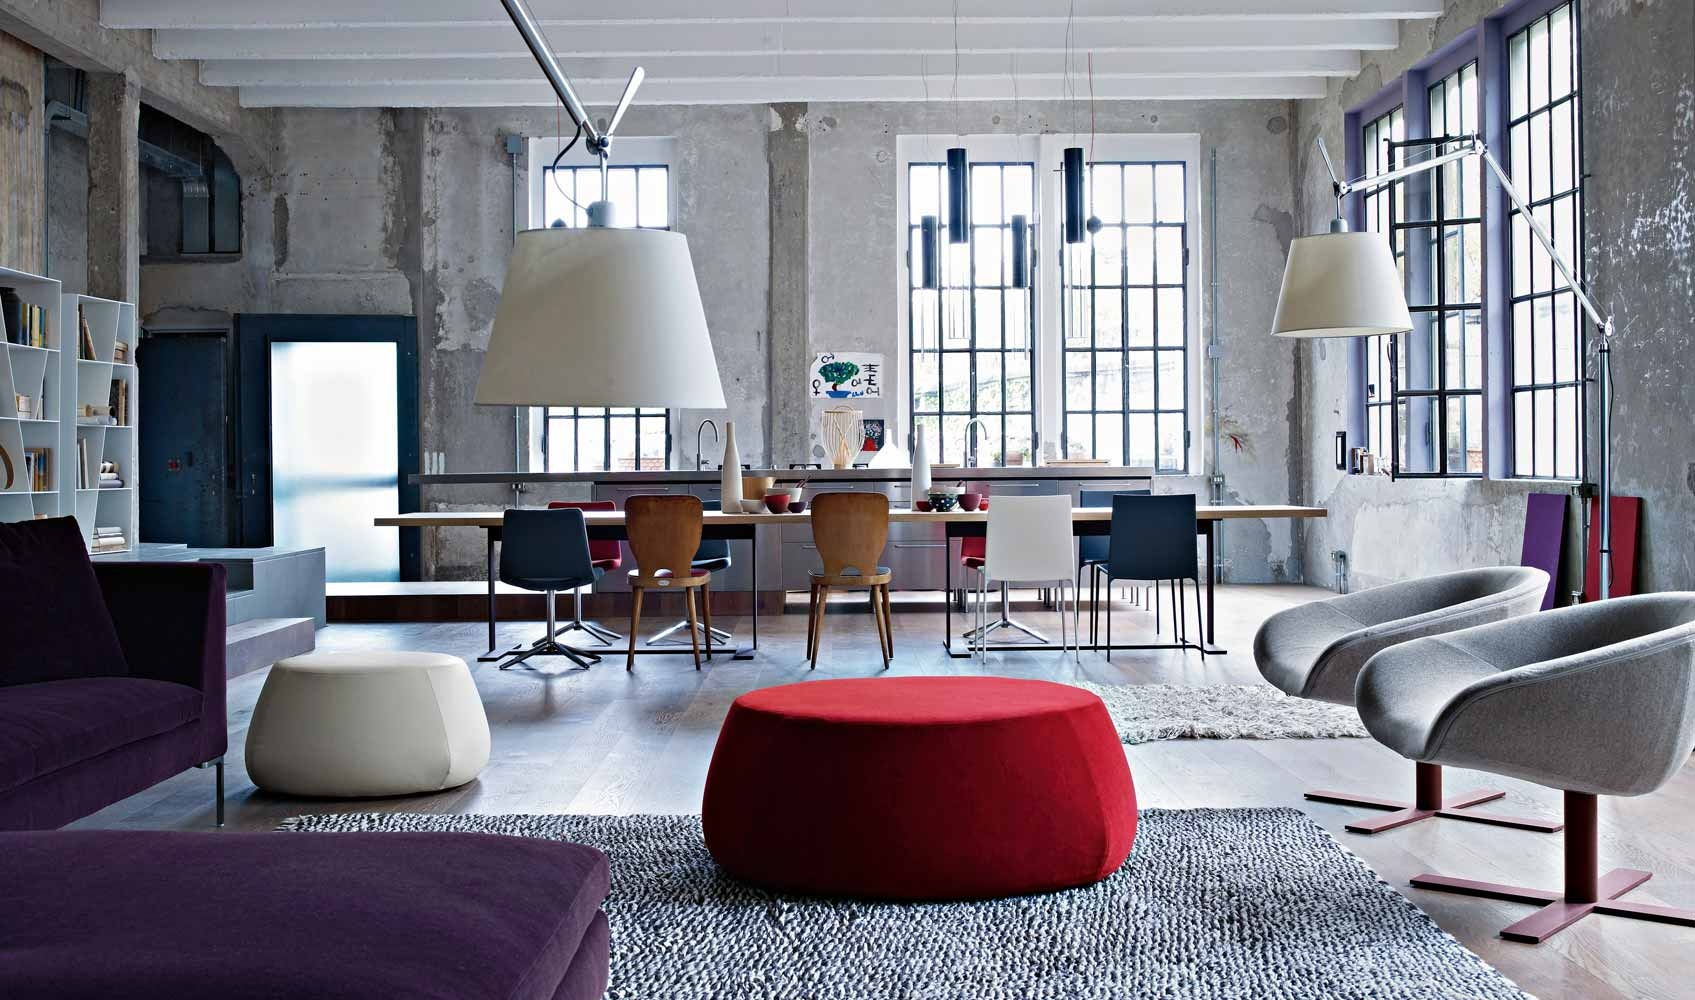 Industrial | Interior Design Ideas - Part 2